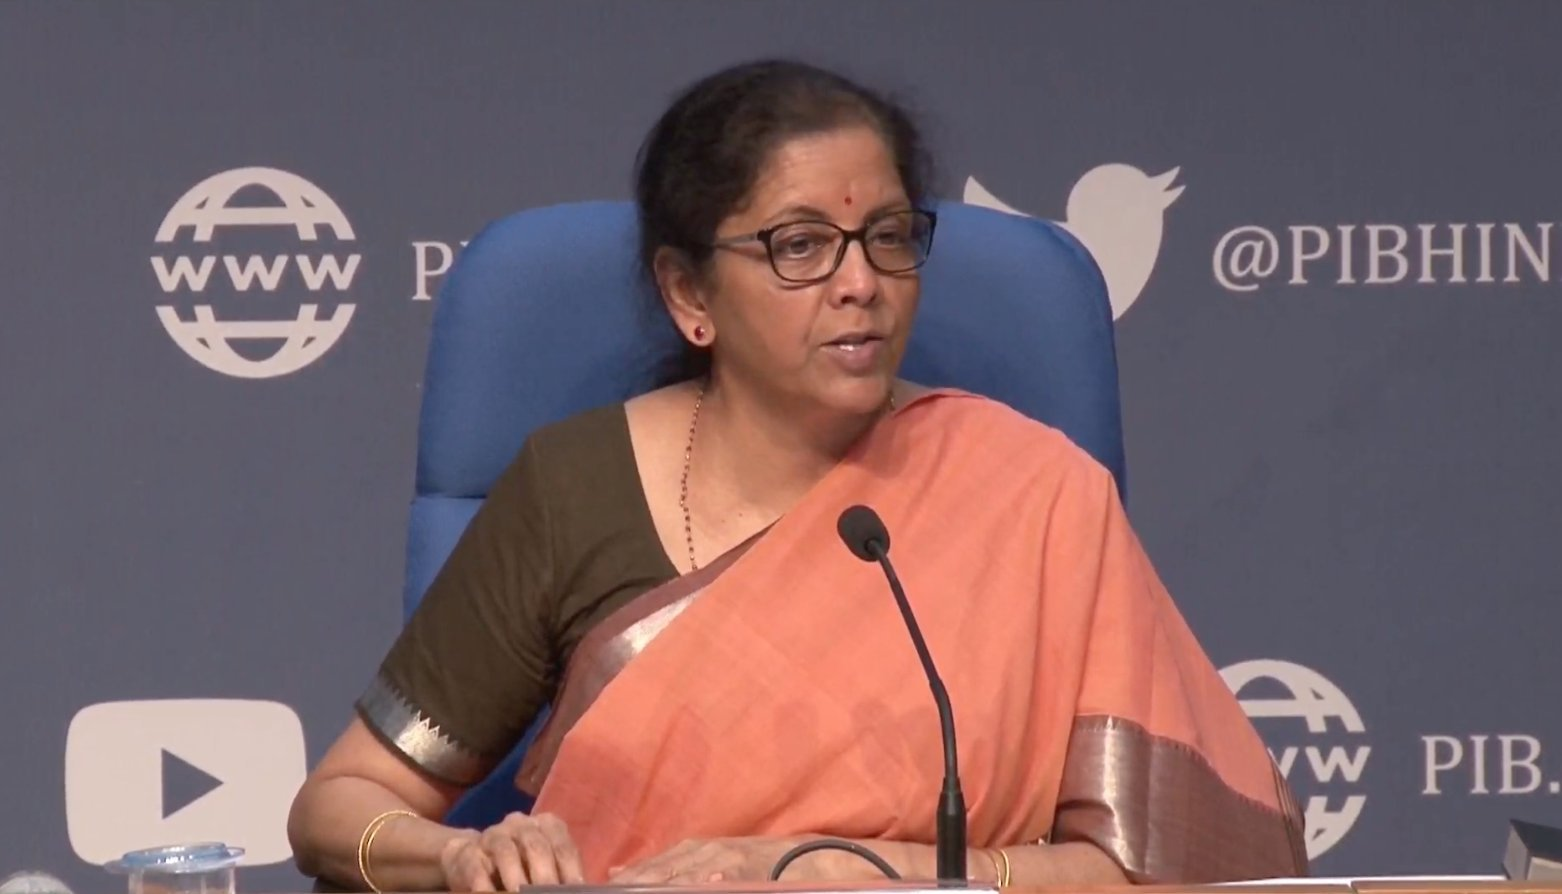 Indian Finance Minister Nirmala Sitharaman announcing a special economic package to help the poor during the COVID-19 outbreak. Photo courtesy: Twitter/@PIBMumbai